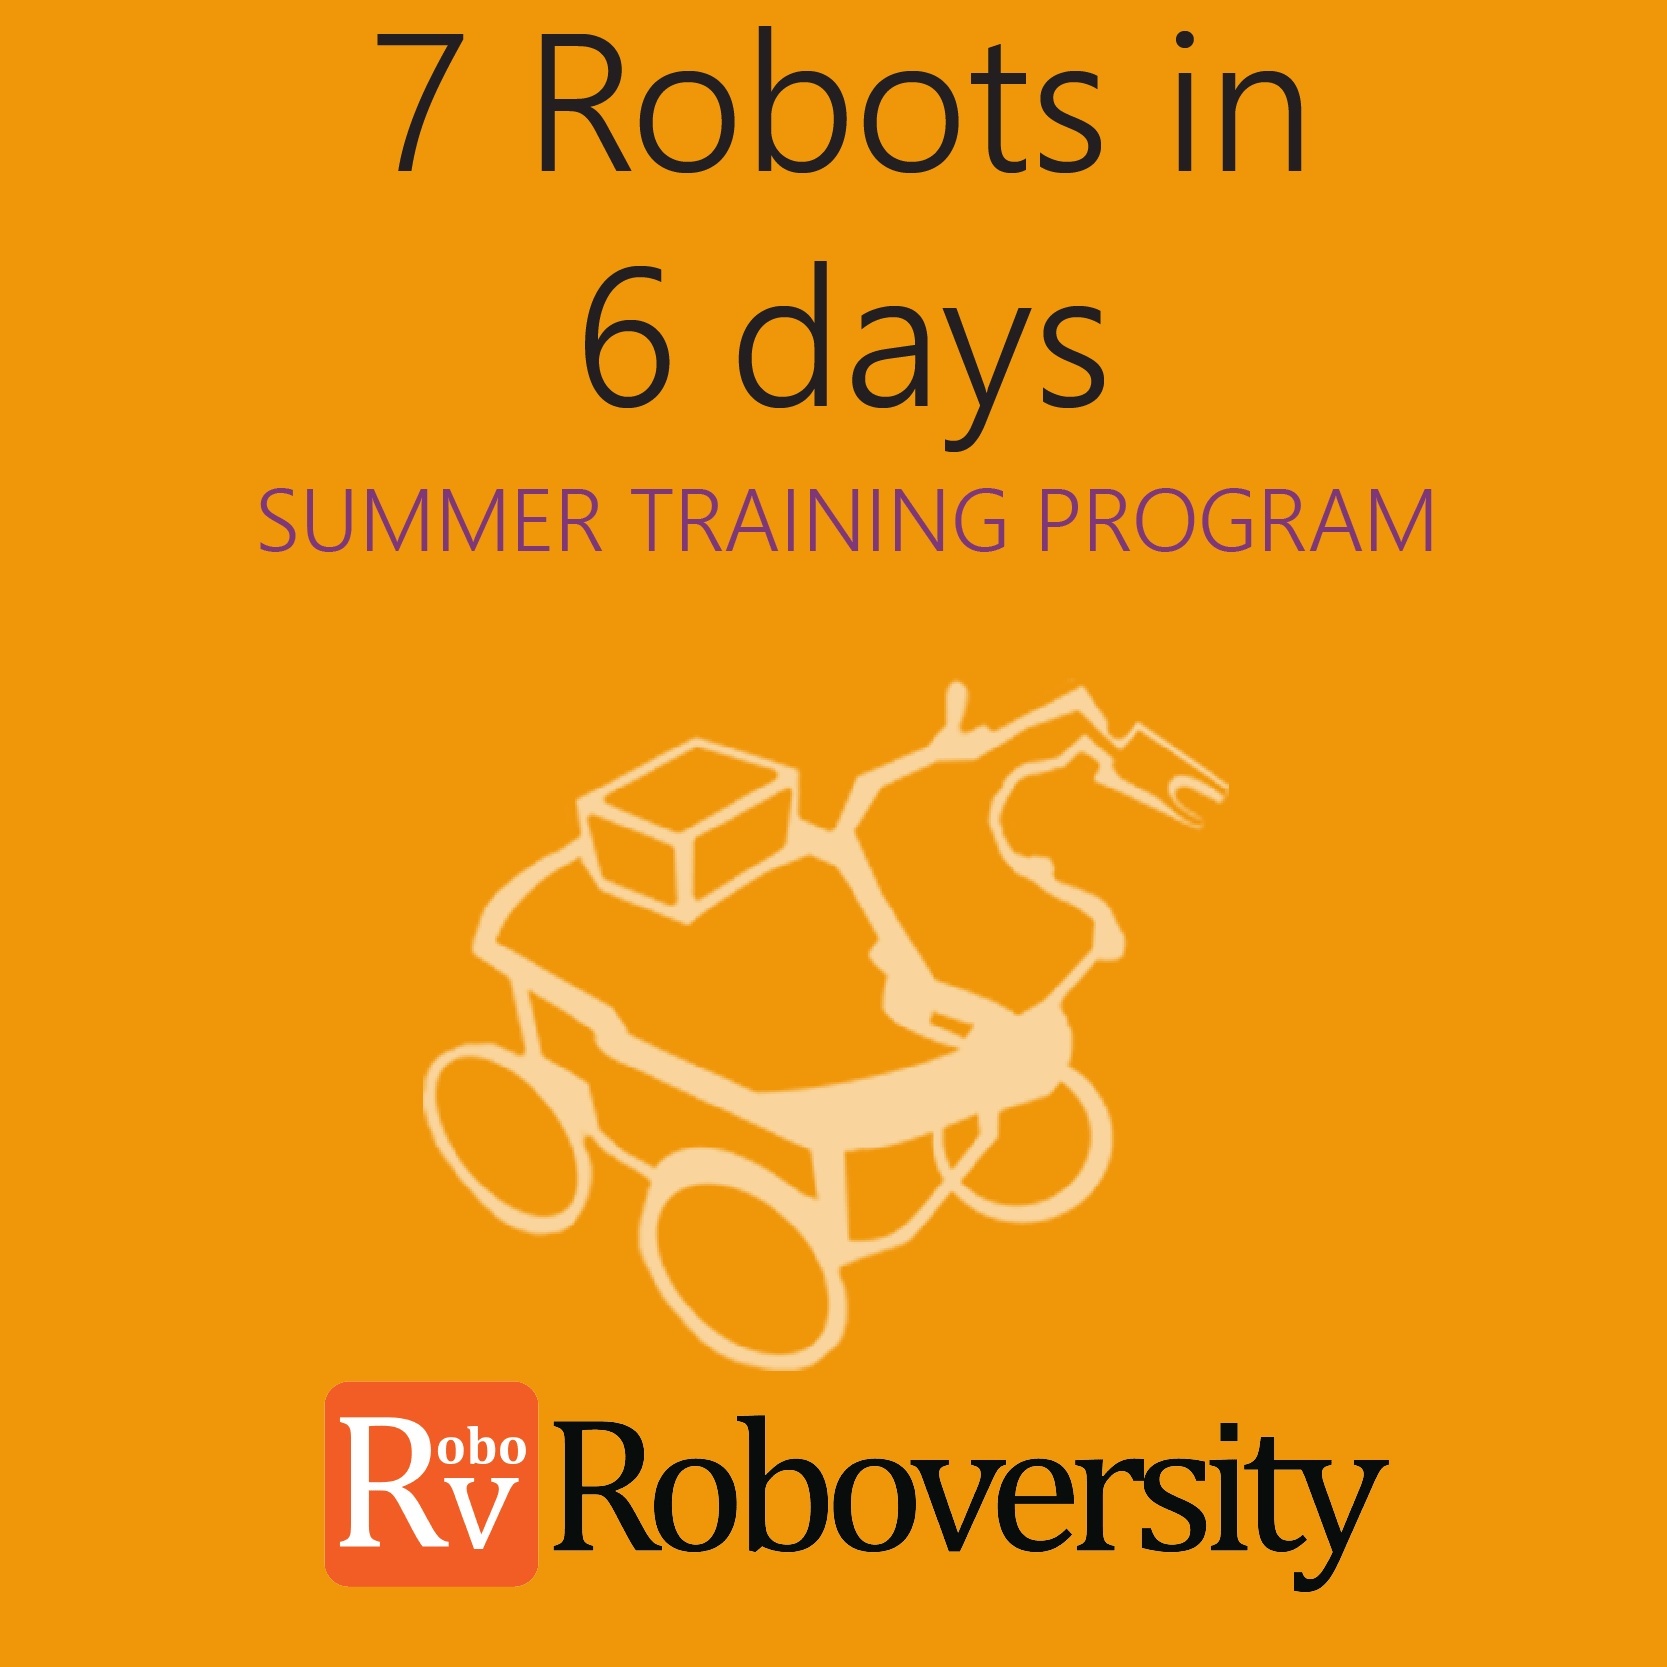 Summer Training Program on 7 Robots in 6 Days  at Skyfi Labs Center, Gate Forum, Gandhi Puram Workshop